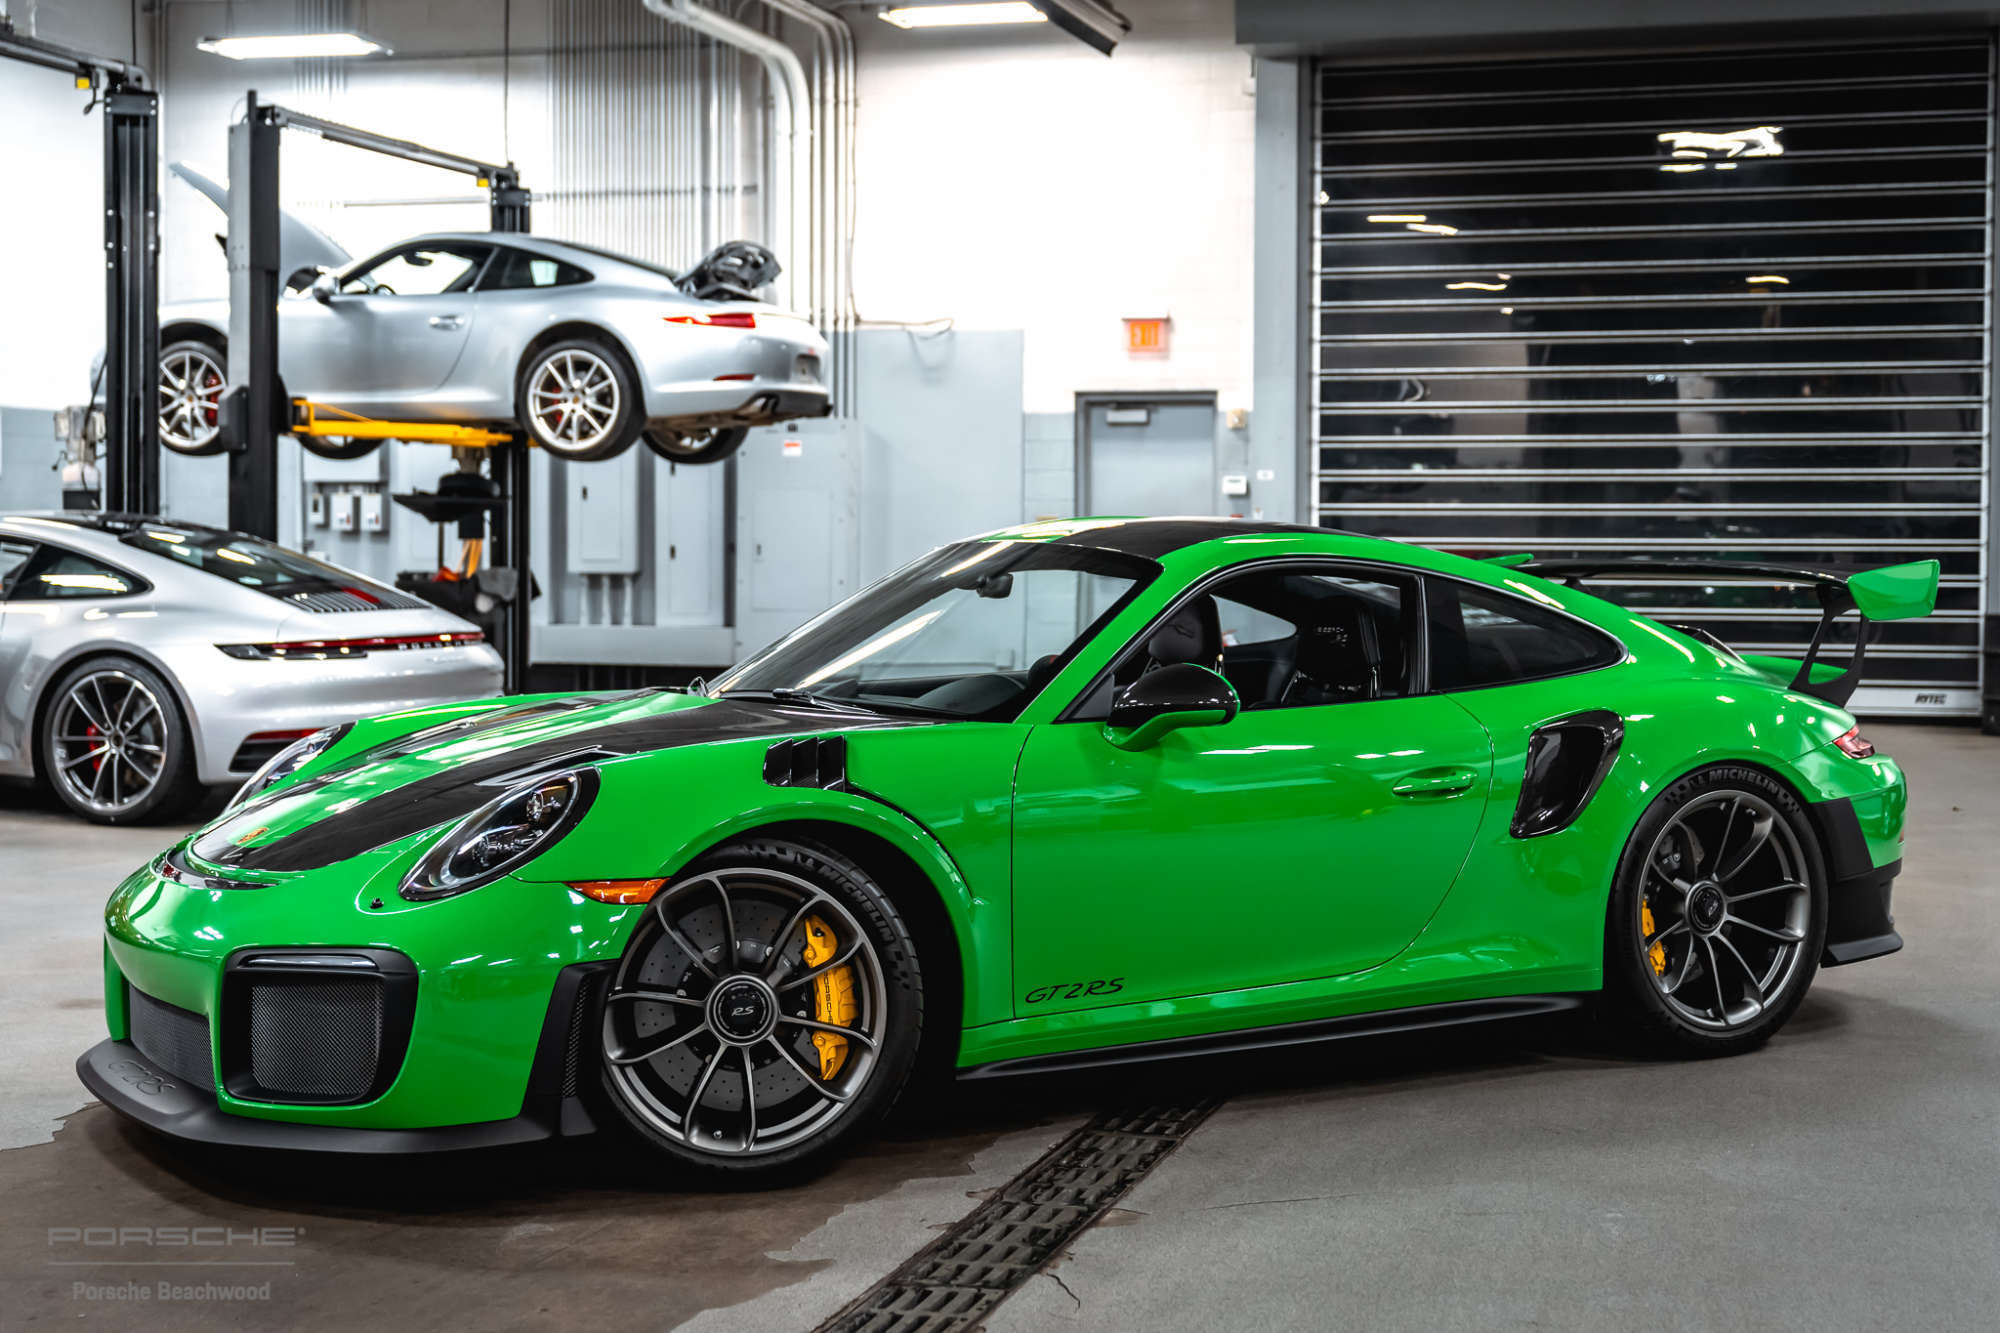 Porsche Green From Auratium To Viper Green Elferspot Com Magazine